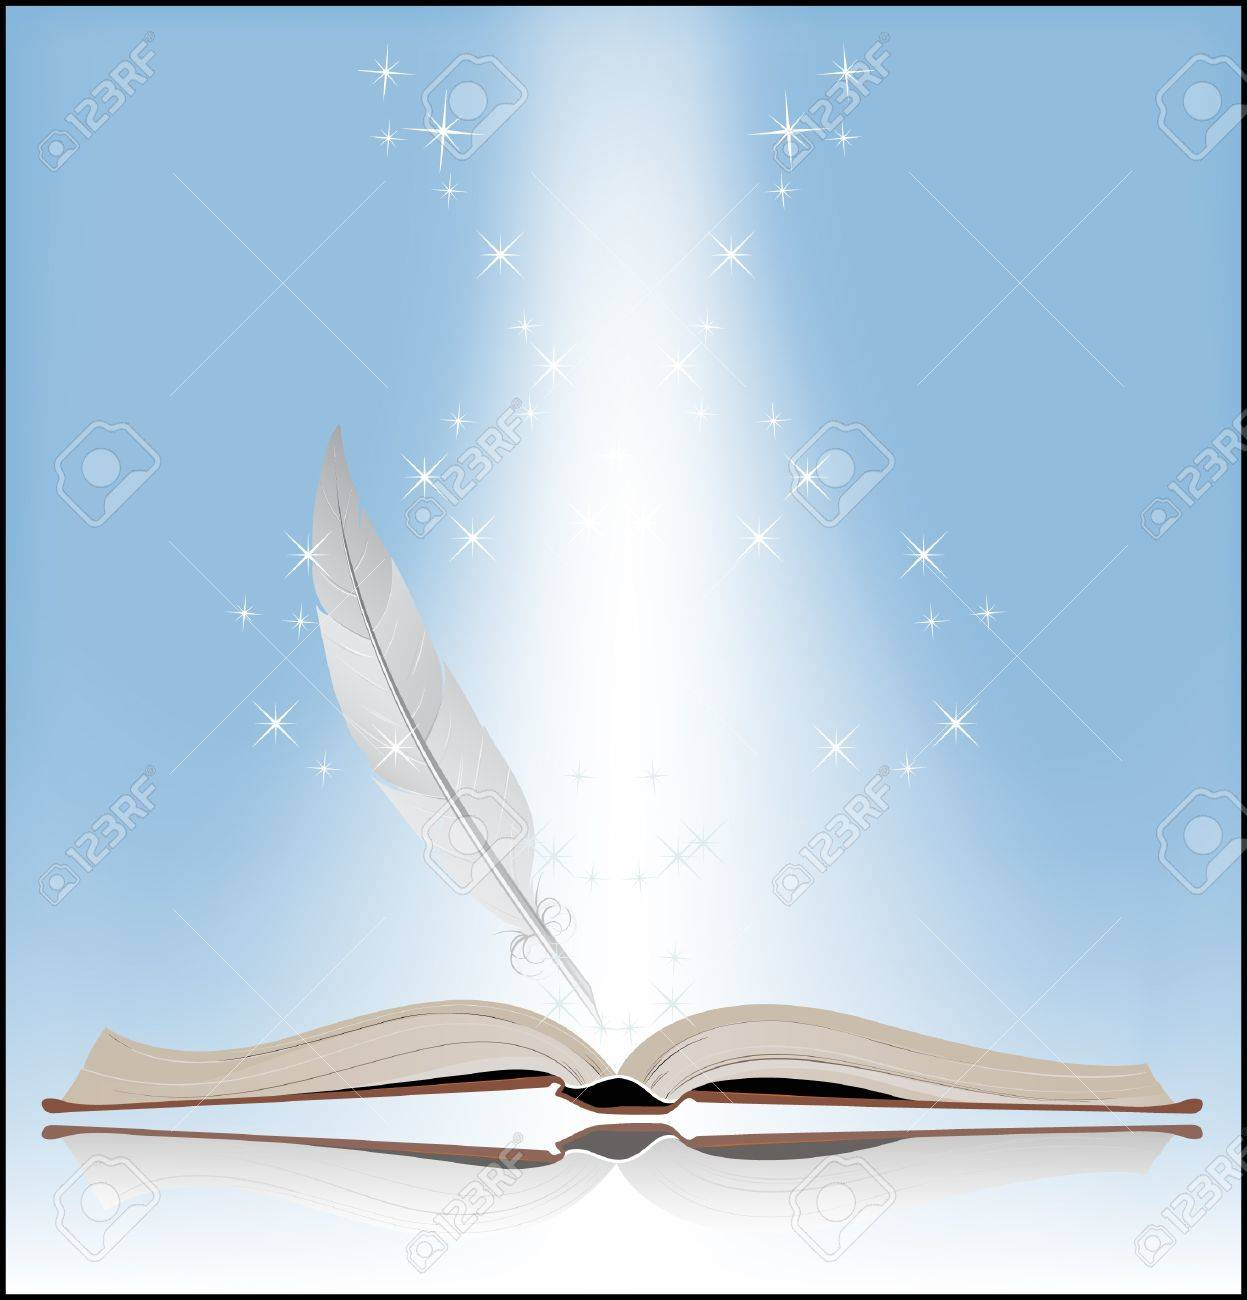 Book on a blue background Symbol of Knowledge - 18592273